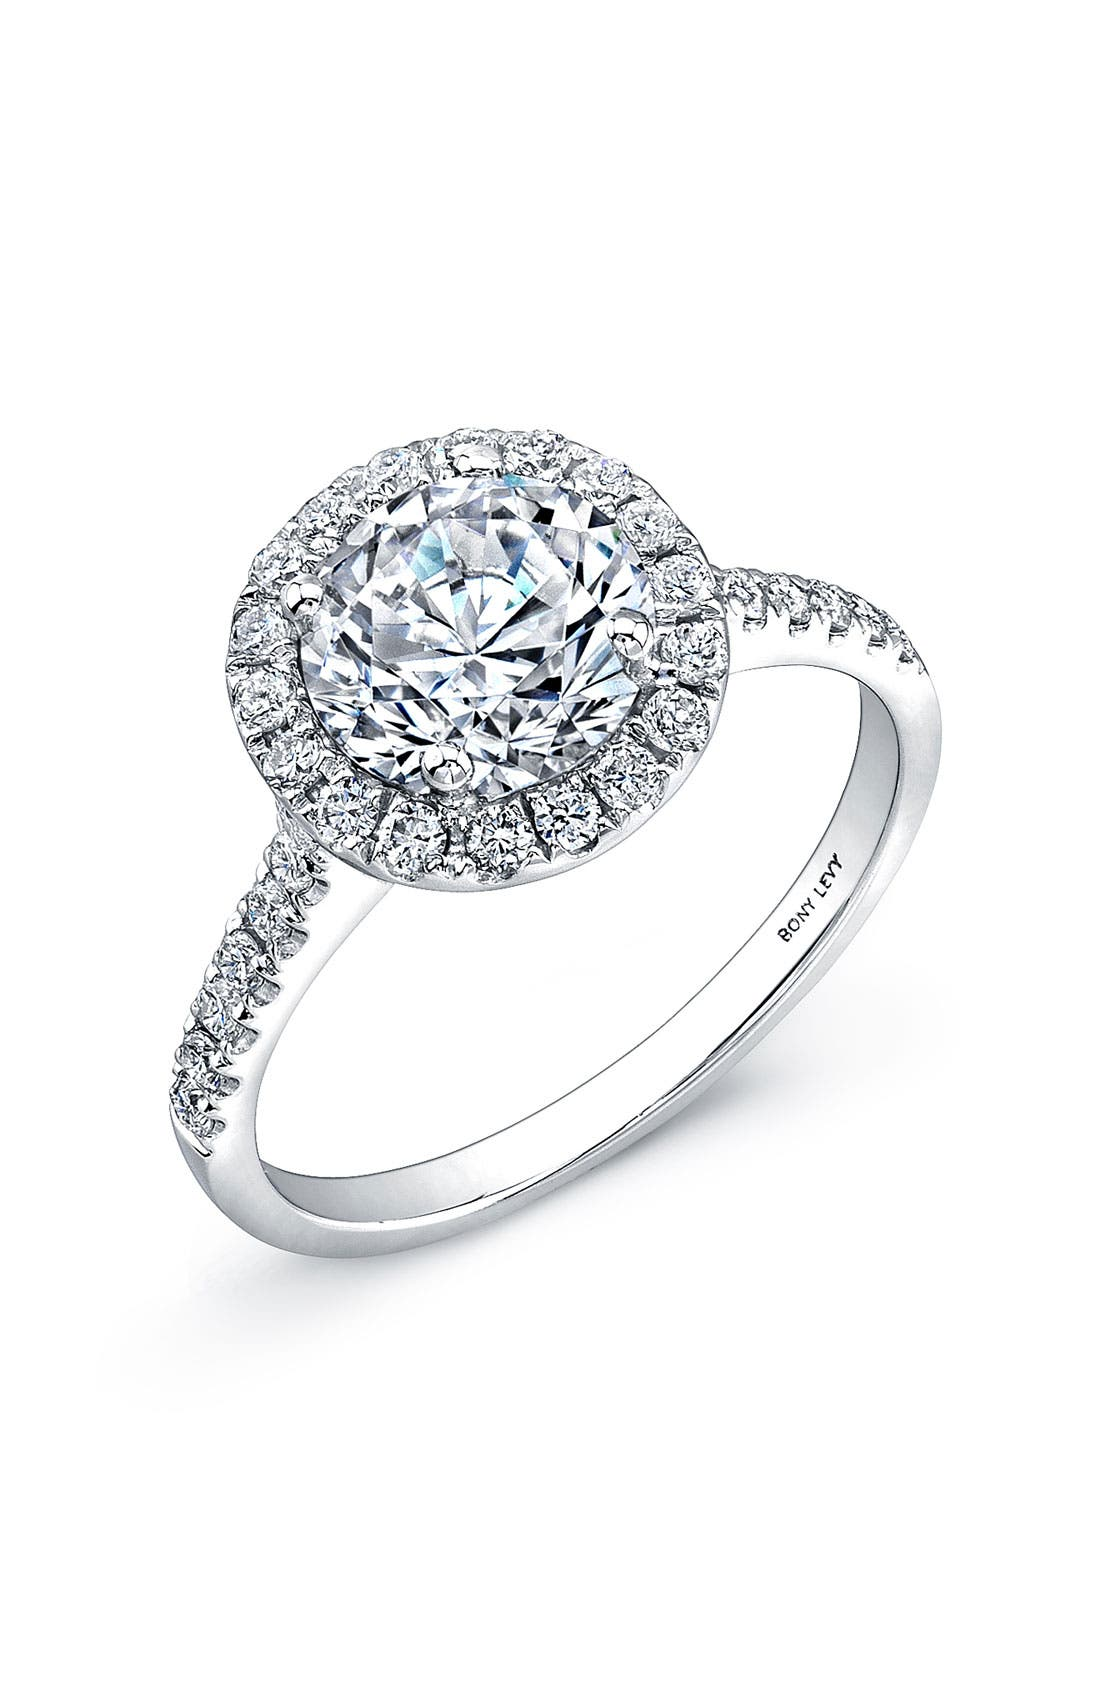 Main Image - Bony Levy Pavé Diamond Leaf Engagement Ring Setting (Nordstrom Exclusive)